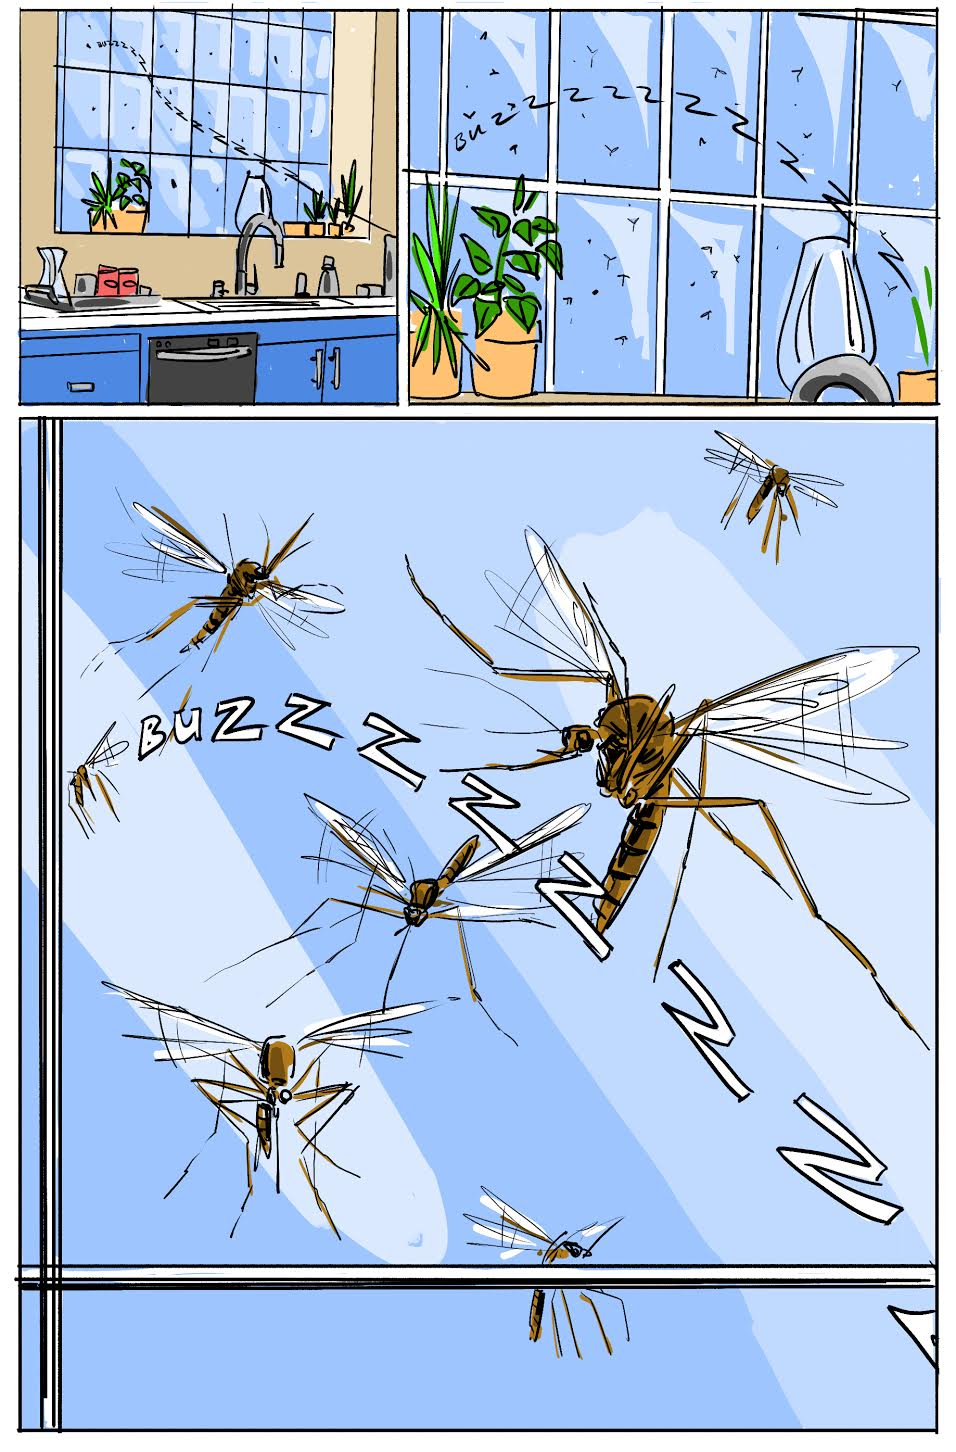 home mosquito control comic